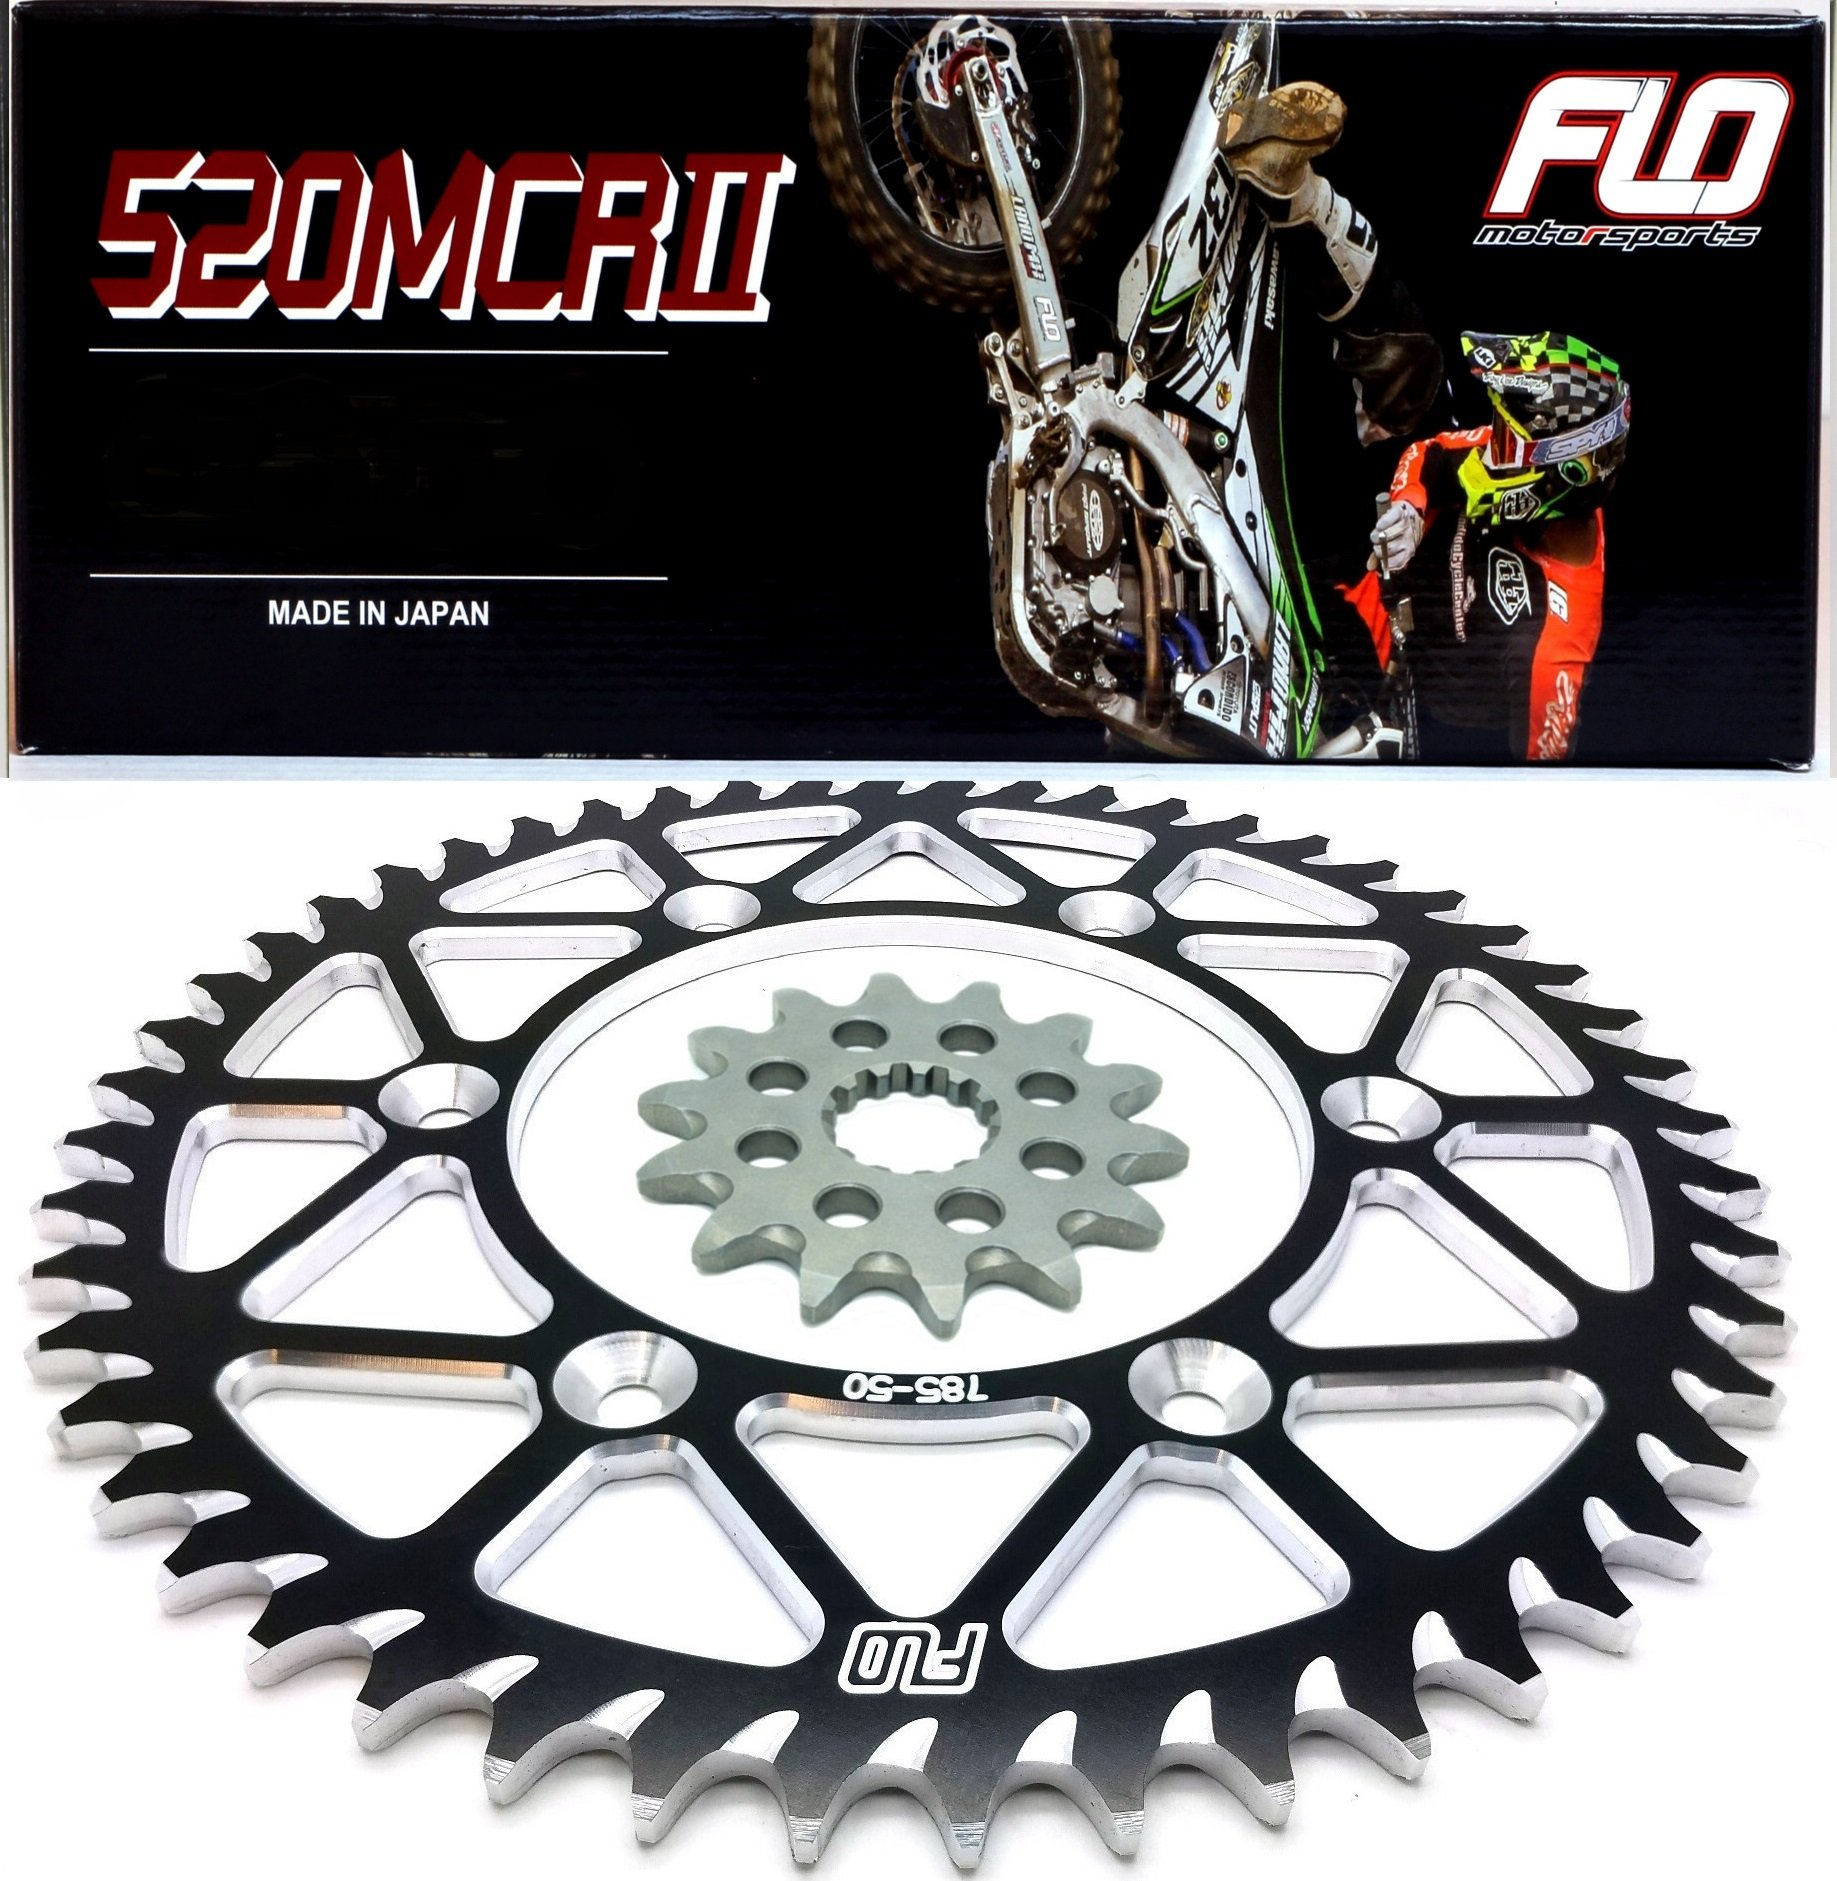 Flo Motorsports Gold Chain & Sprocket Combo Kit HONDA CRF250 CR125 CRF250R FRONT SPROCKET 14T / REAR SPROCKET 48, 49, 50, 51, 53 TOOTH (49T, Black) by Flo Motorsports